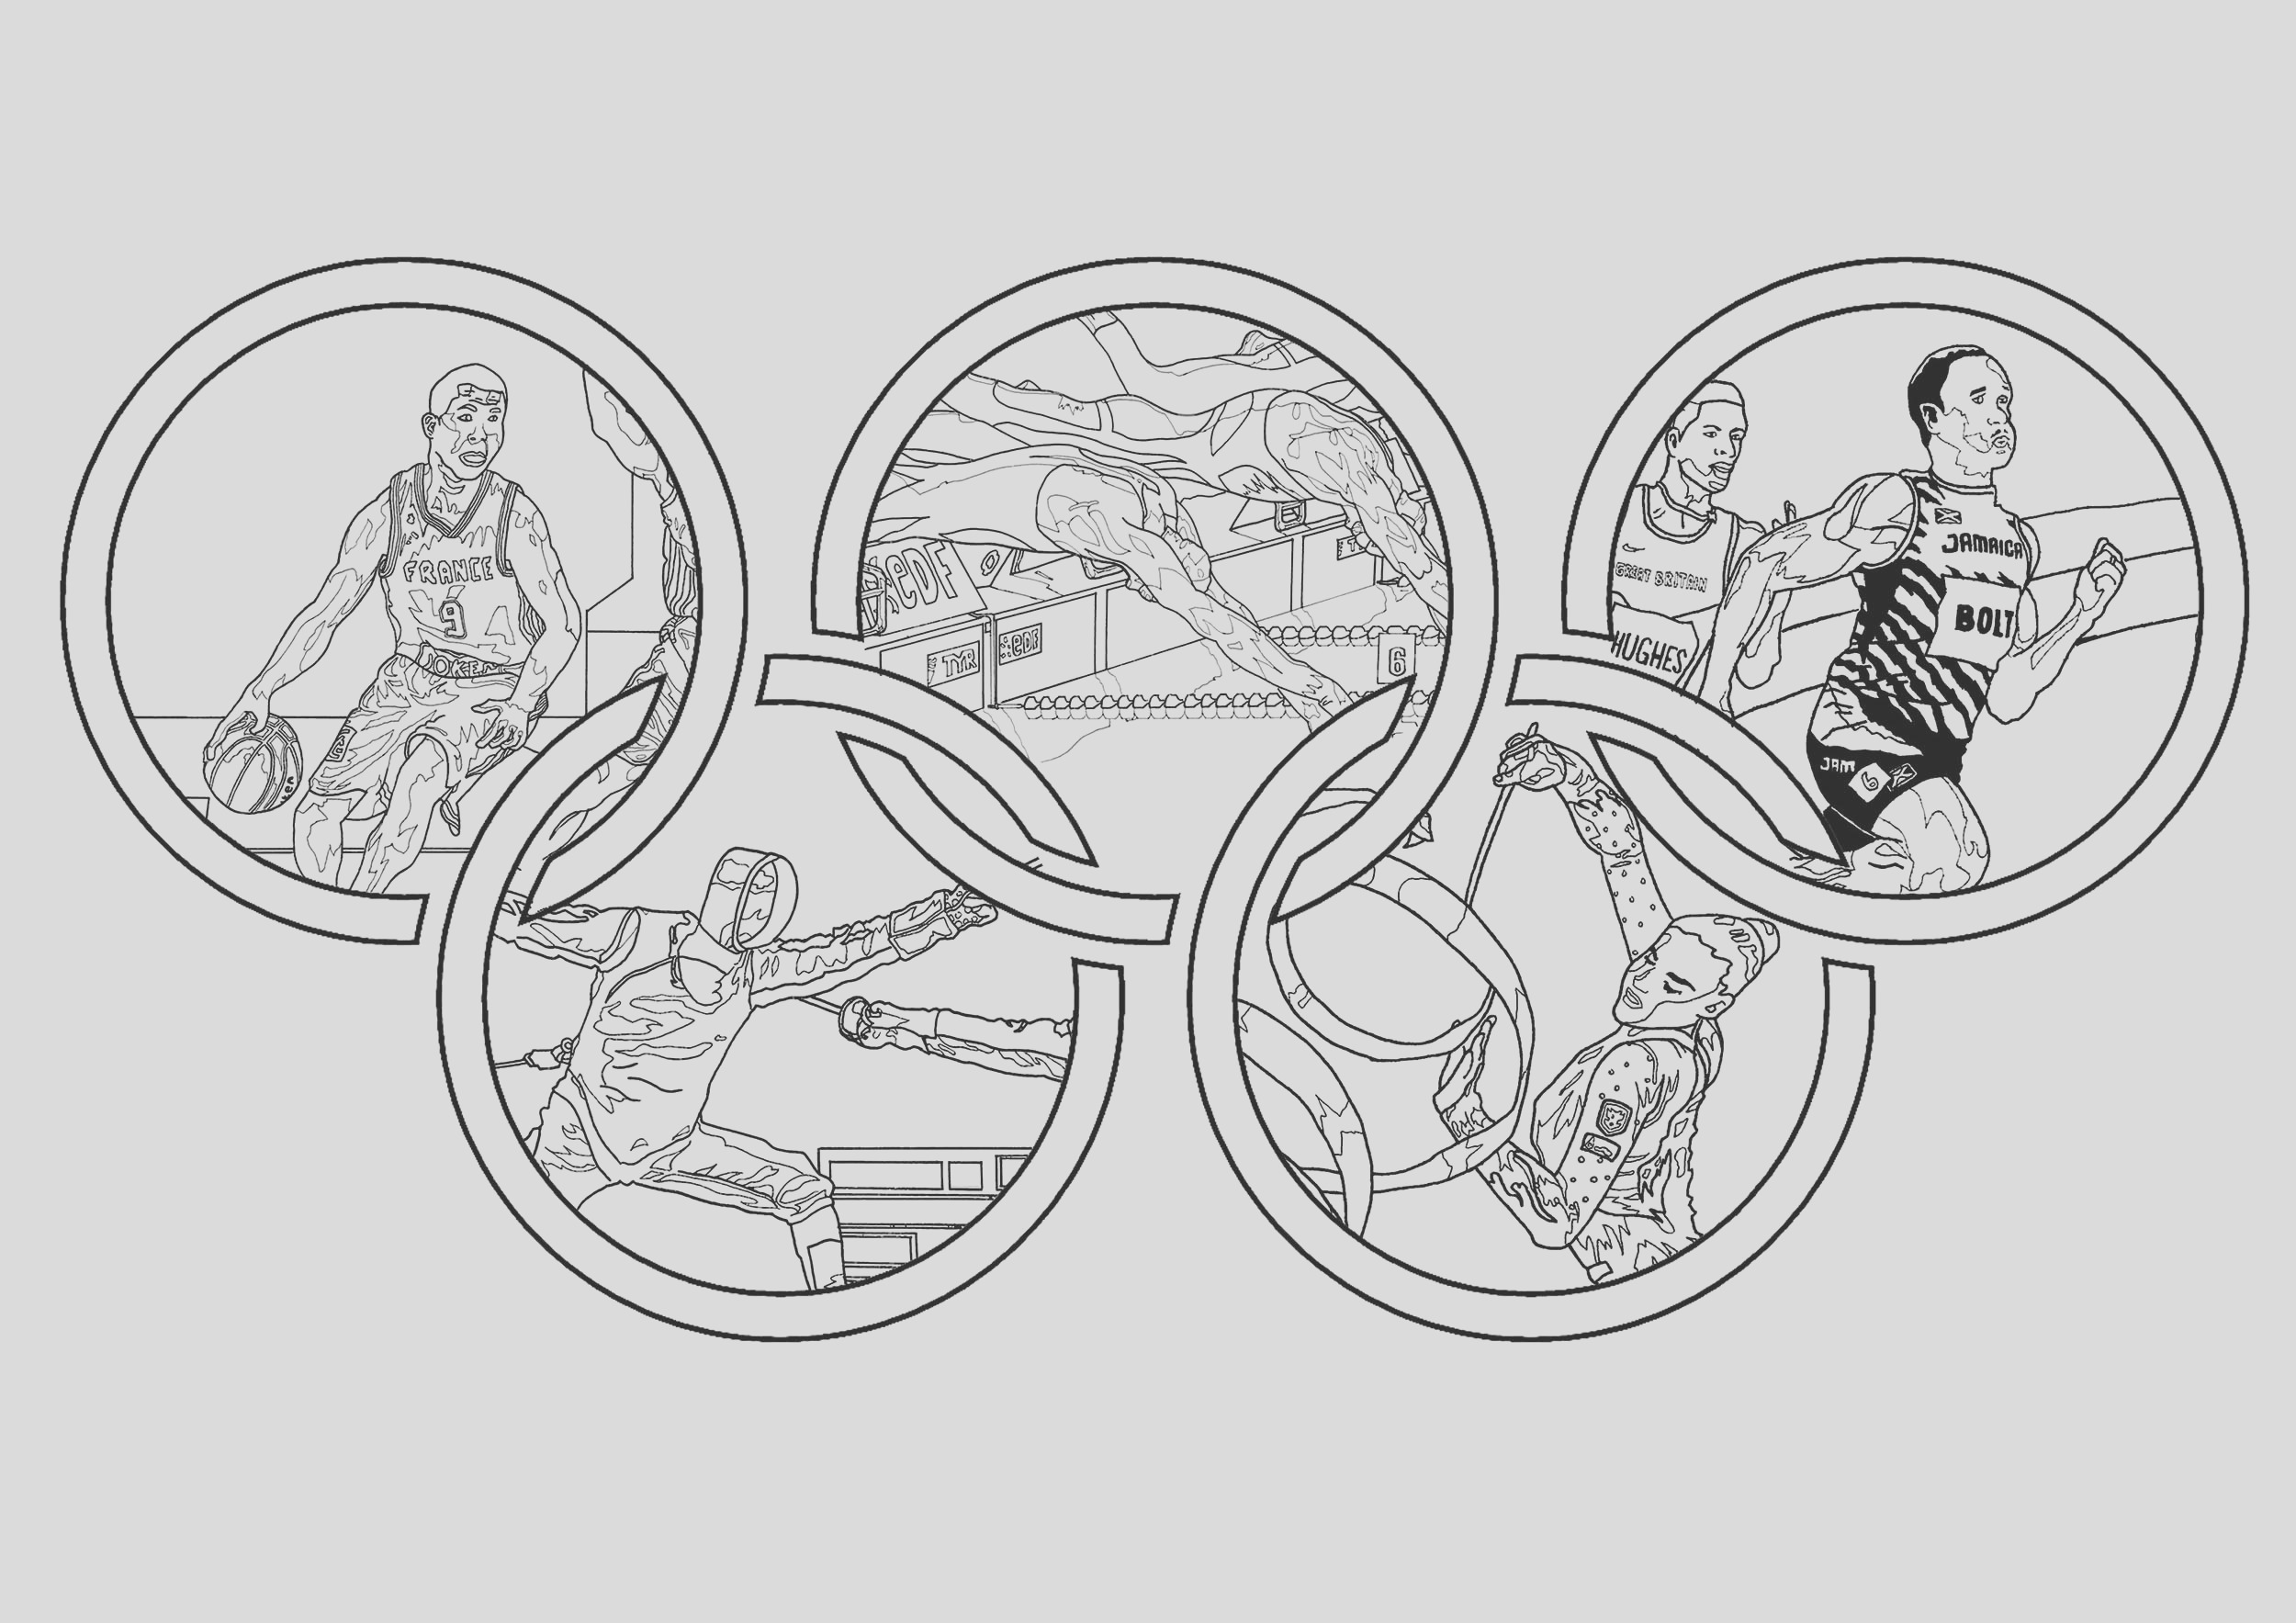 image=olympic games Coloring for kids olympic games 1